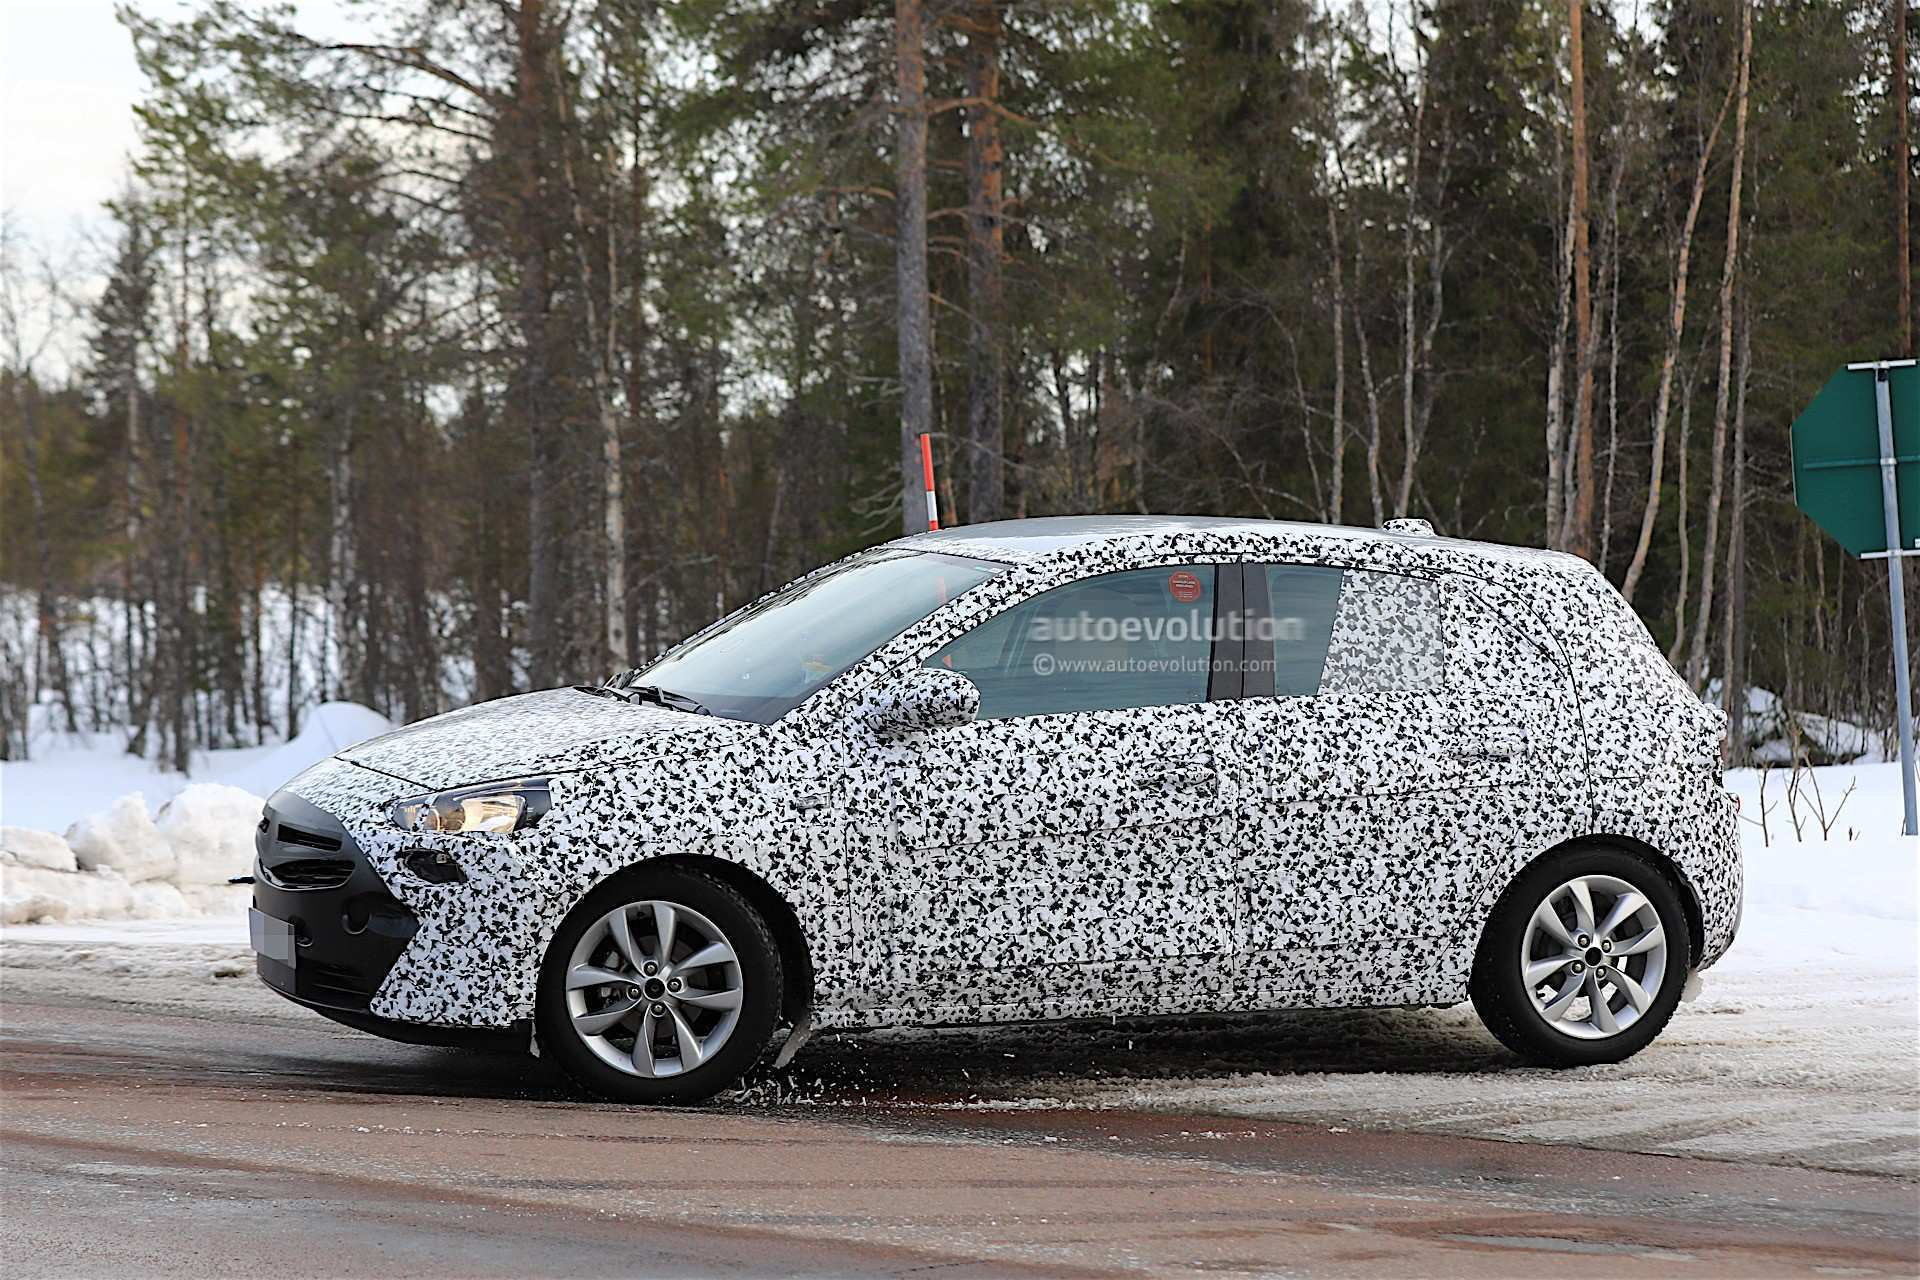 45 New 2019 Opel Corsa Reviews by 2019 Opel Corsa